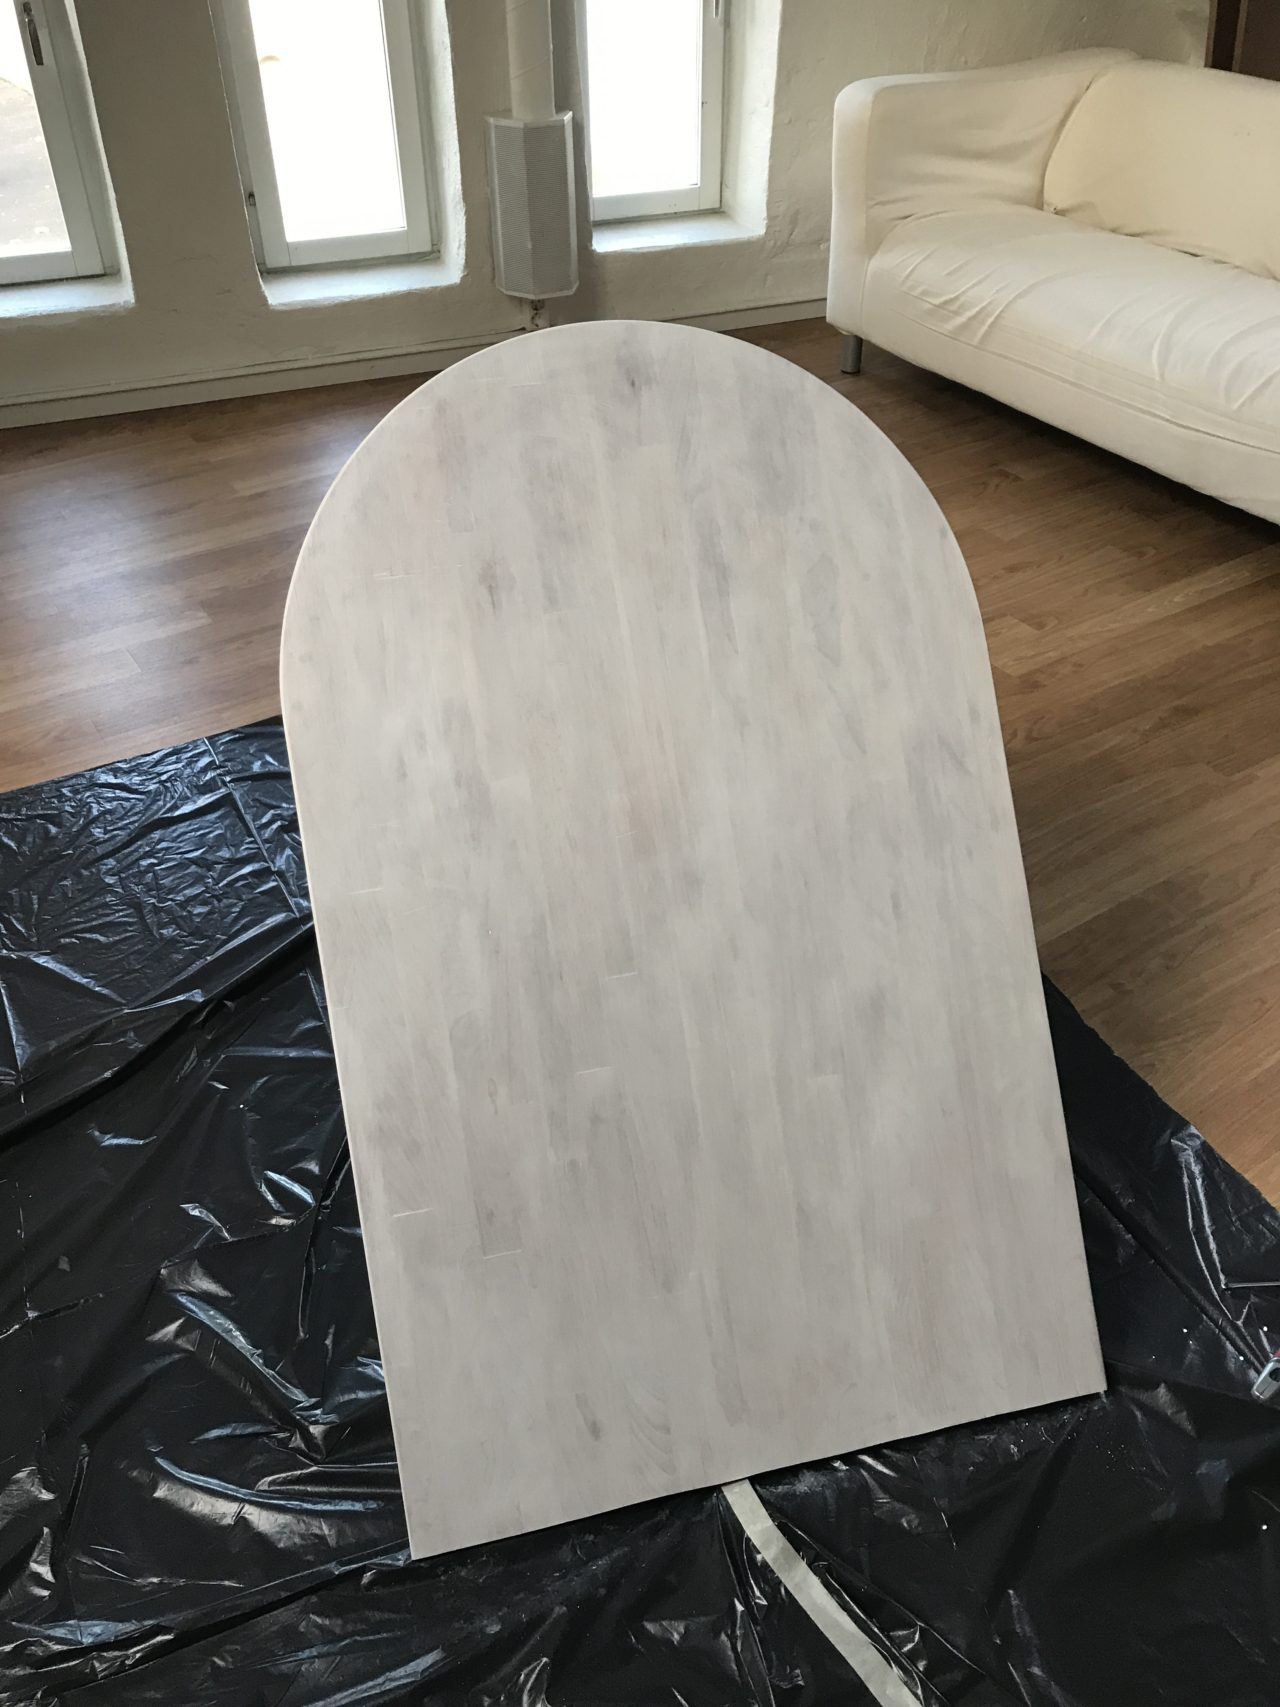 Bar Table Being Painted With Plastic Protection And A Couch In The Background